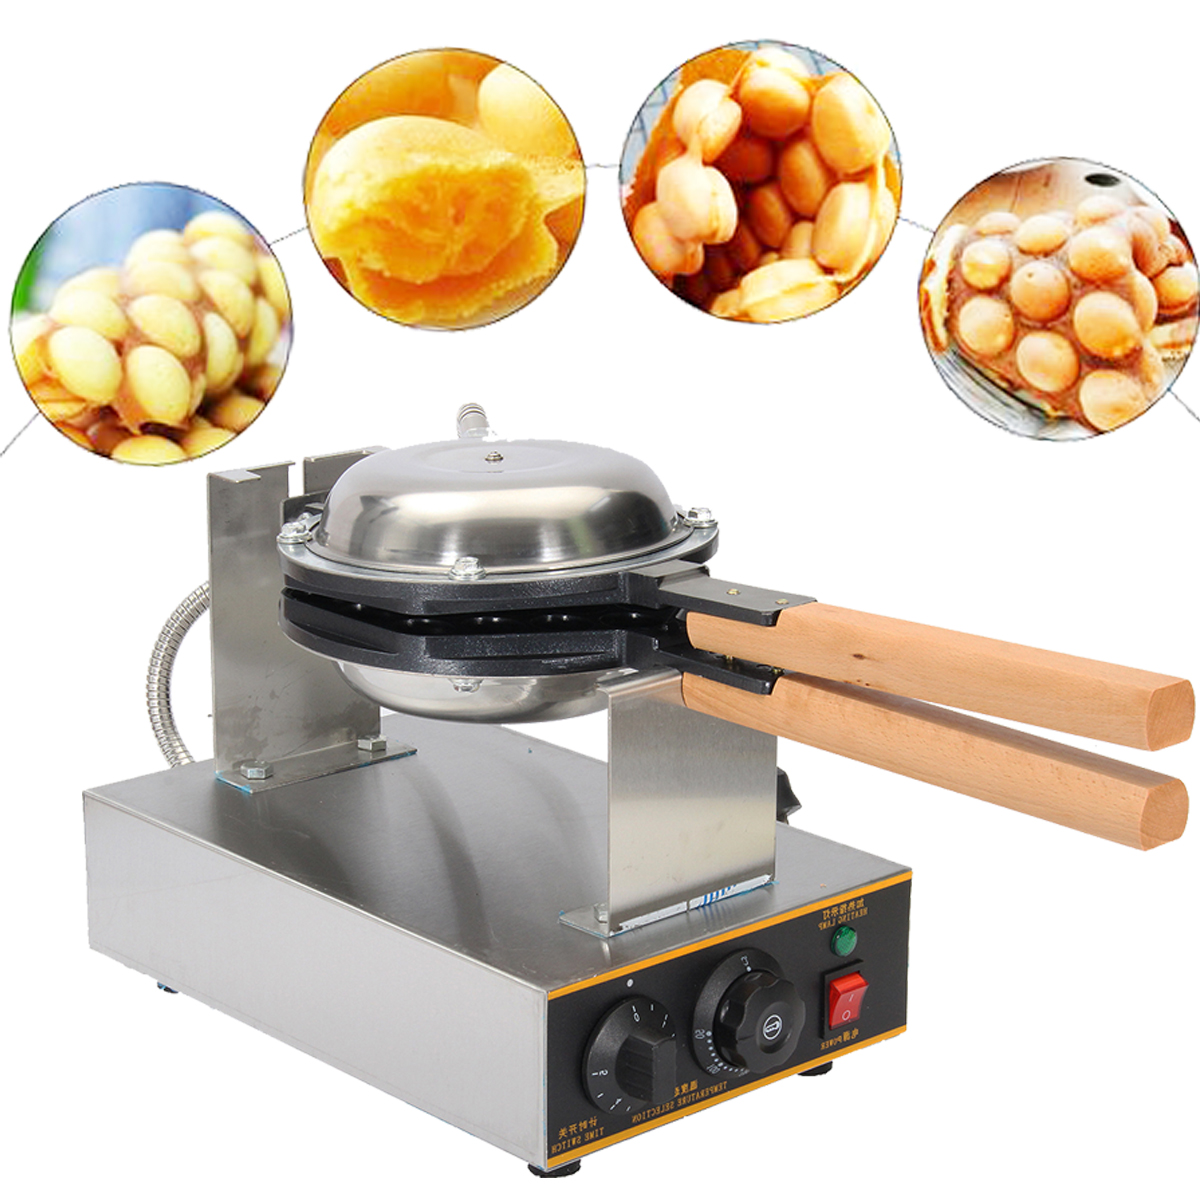 цена Warmtoo 220V 1.4Kw Stainless Steel Non-stick Electric Egg Cake Machine Egg Pancake Machine Oven Waffle Maker Machine